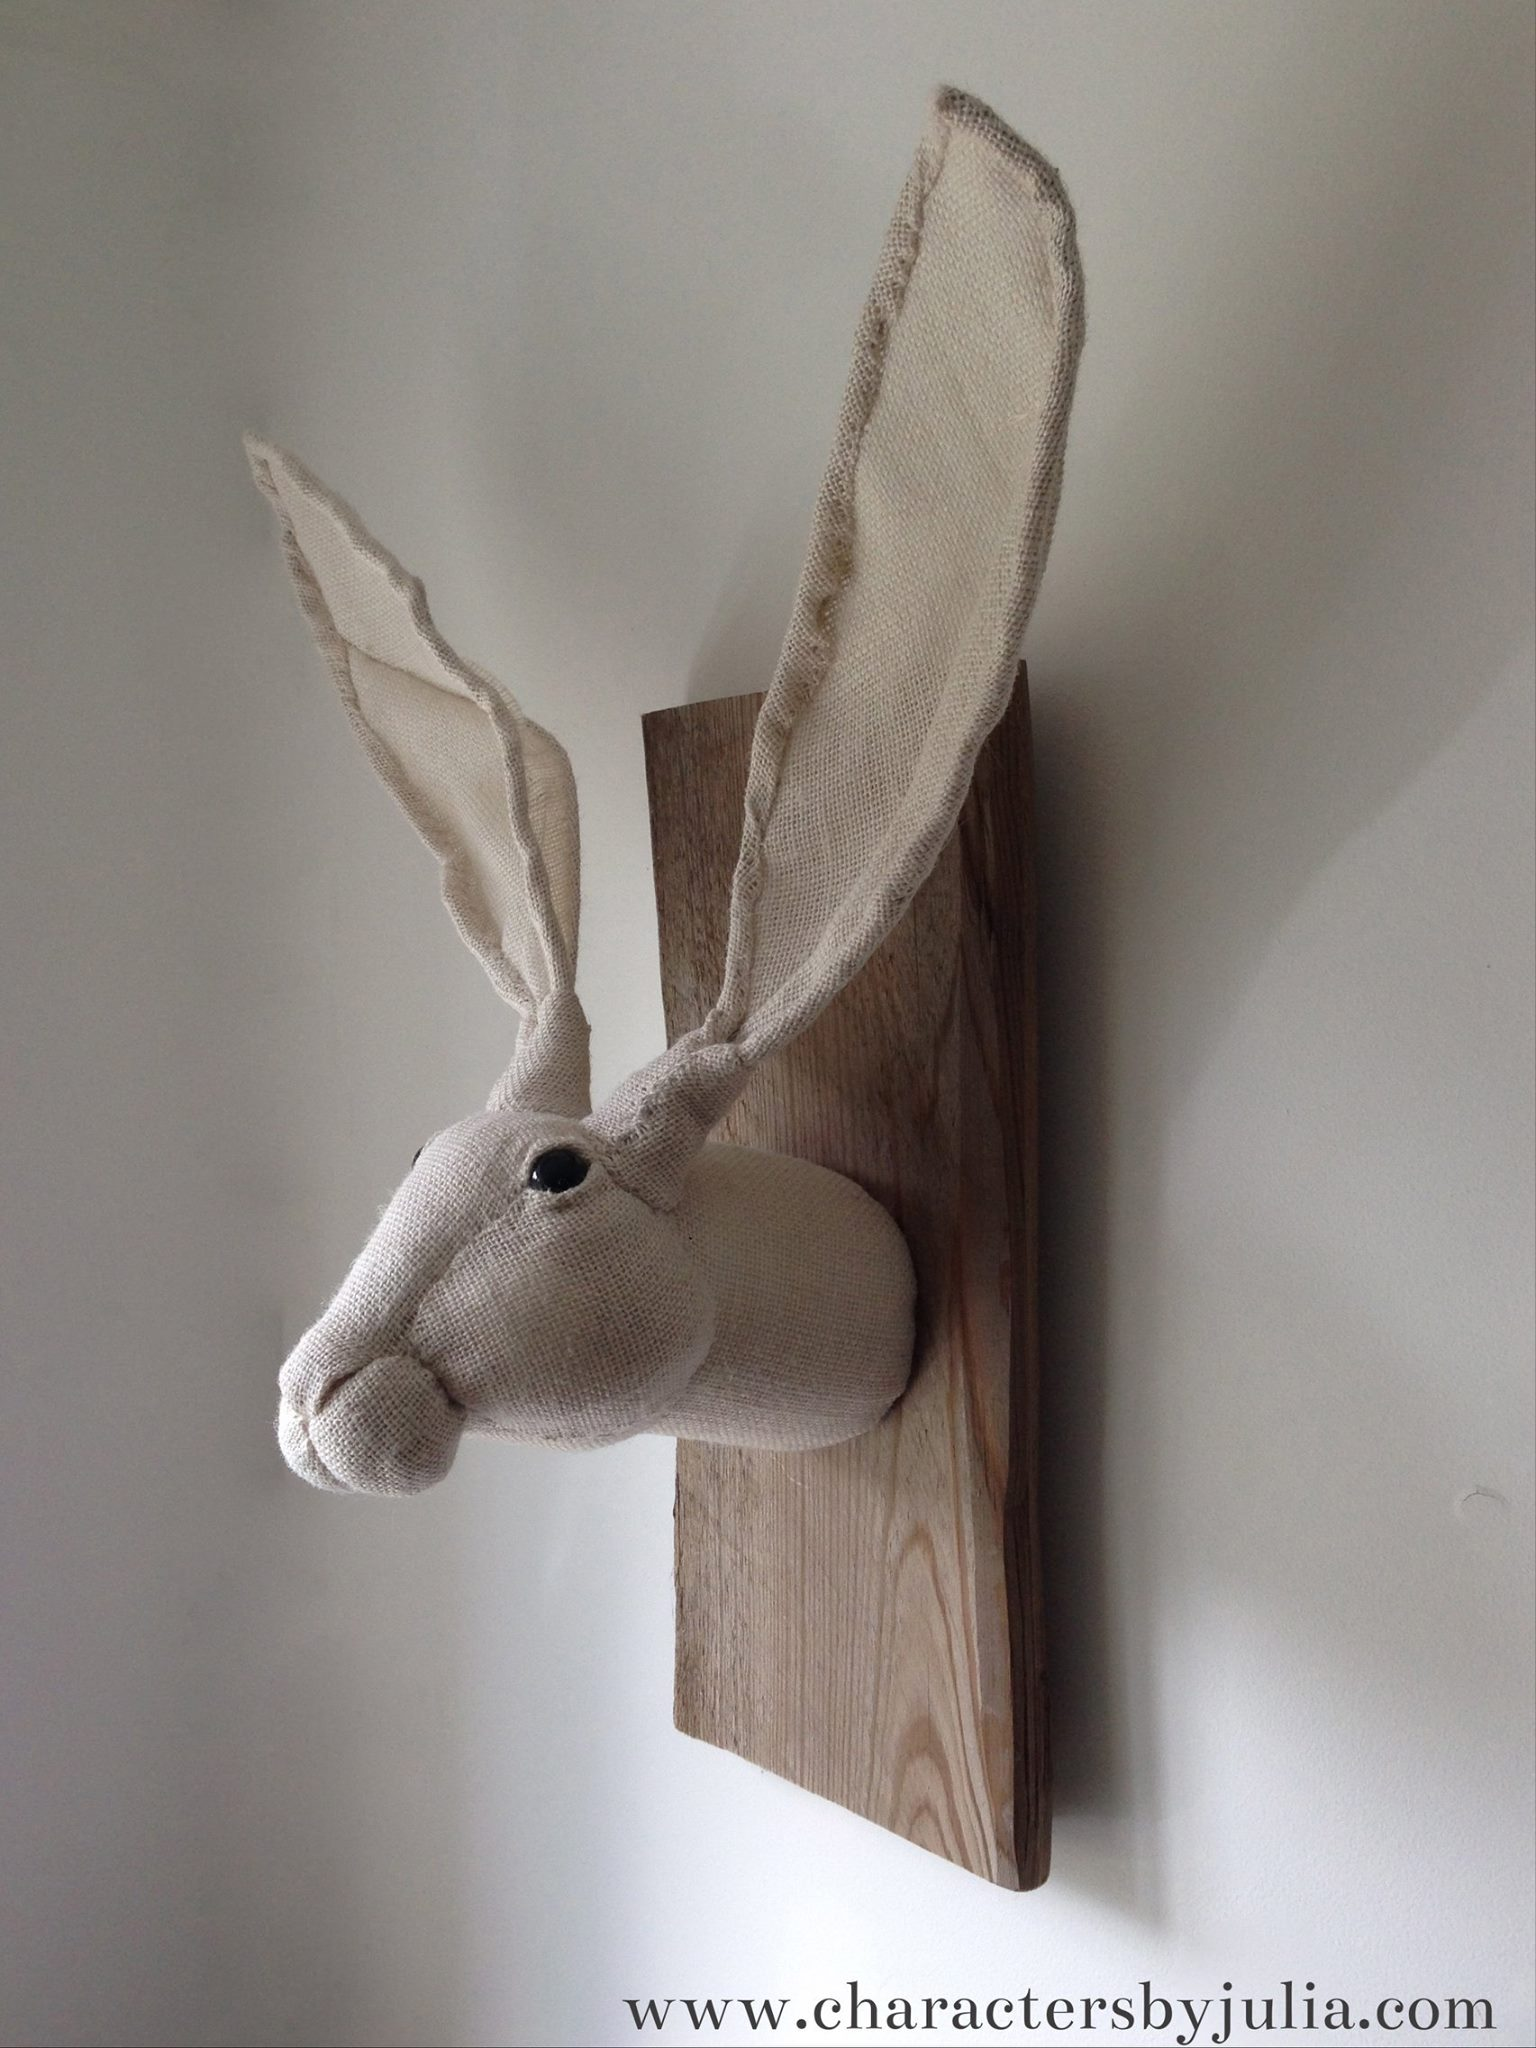 New hessian hare trophy – Julia trophee textile